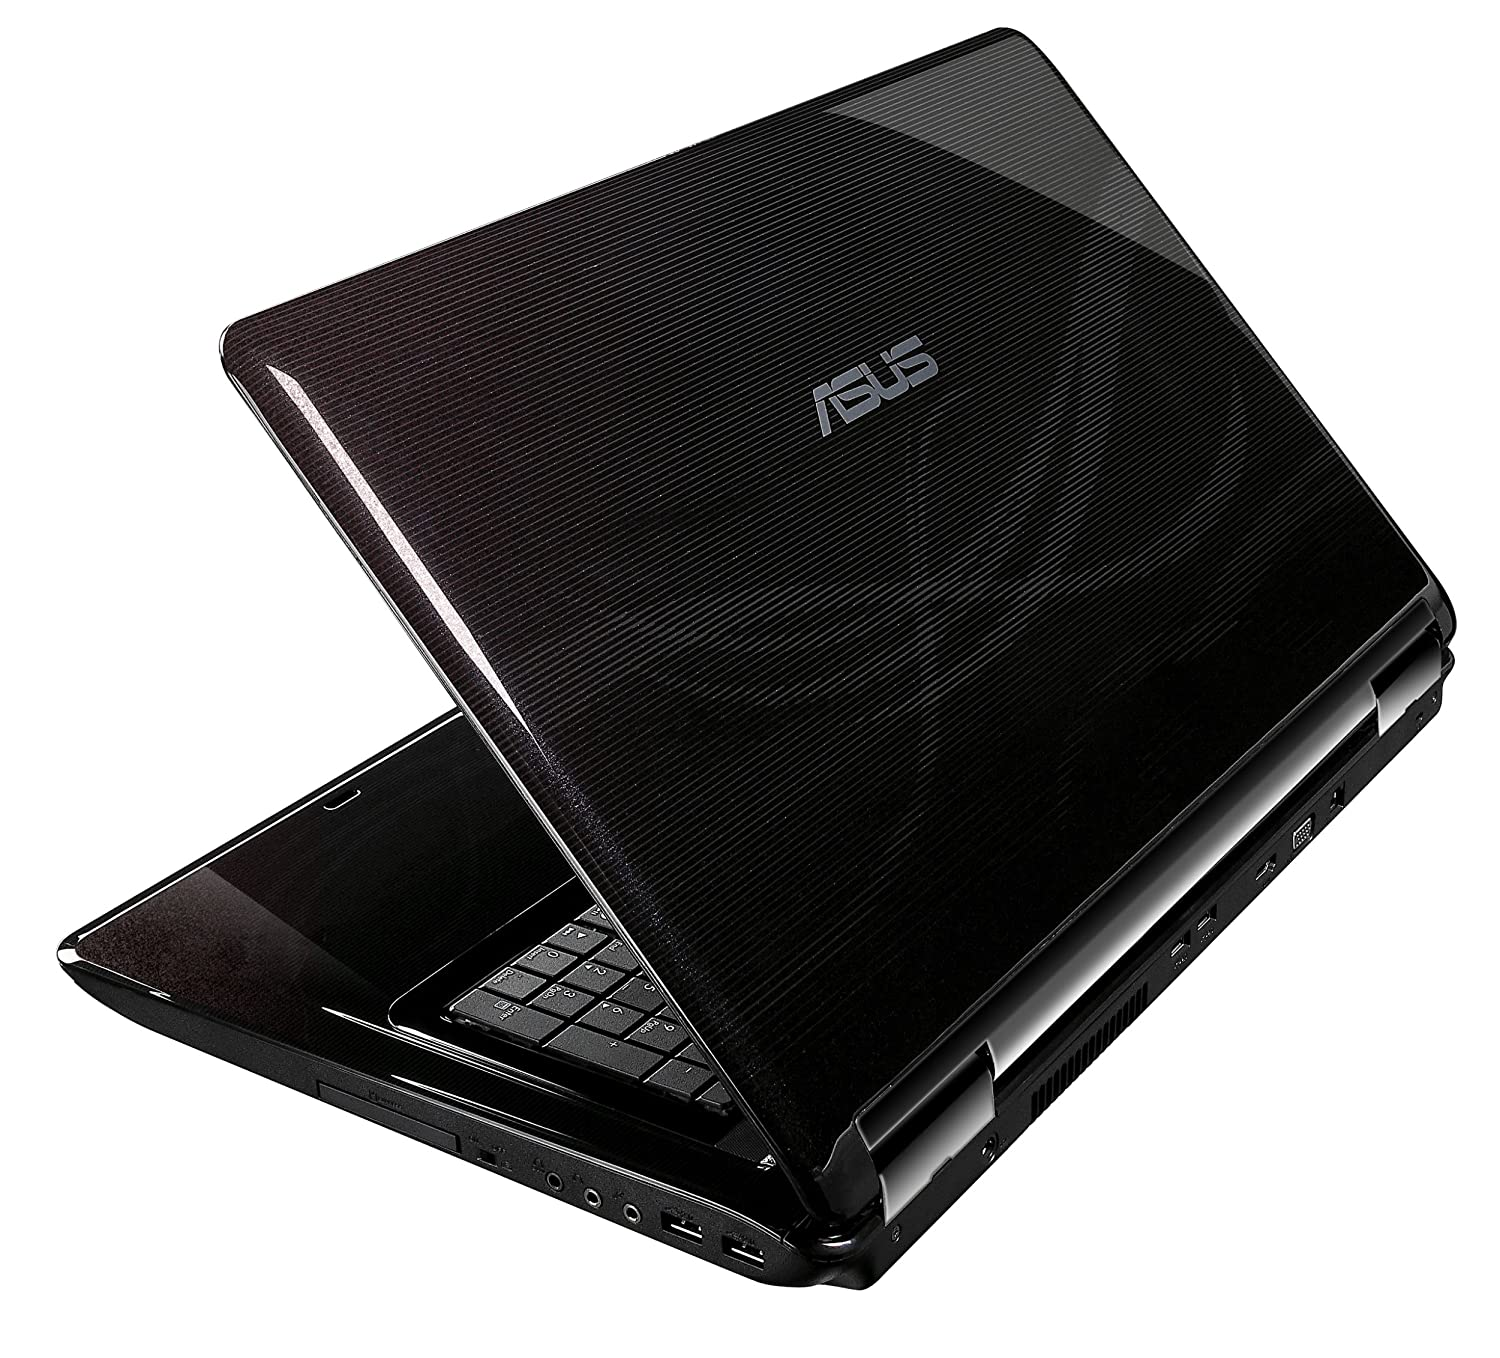 Asus N90Sv Notebook Audio Driver for Windows 10